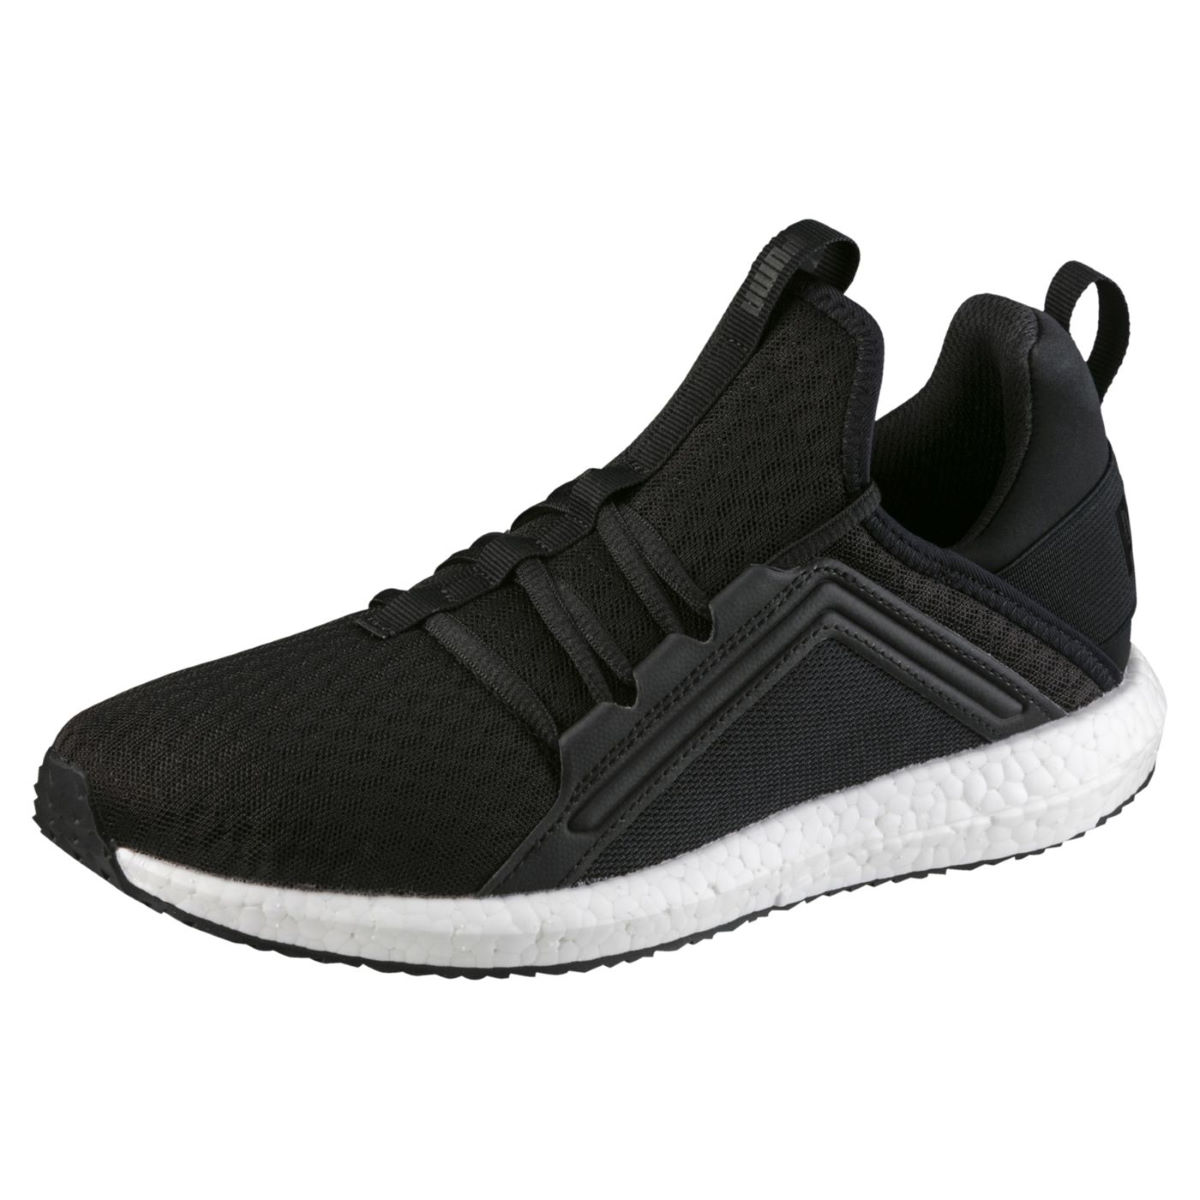 Chaussures Femme Puma Mega NRGY Knit - UK 8.5 puma black